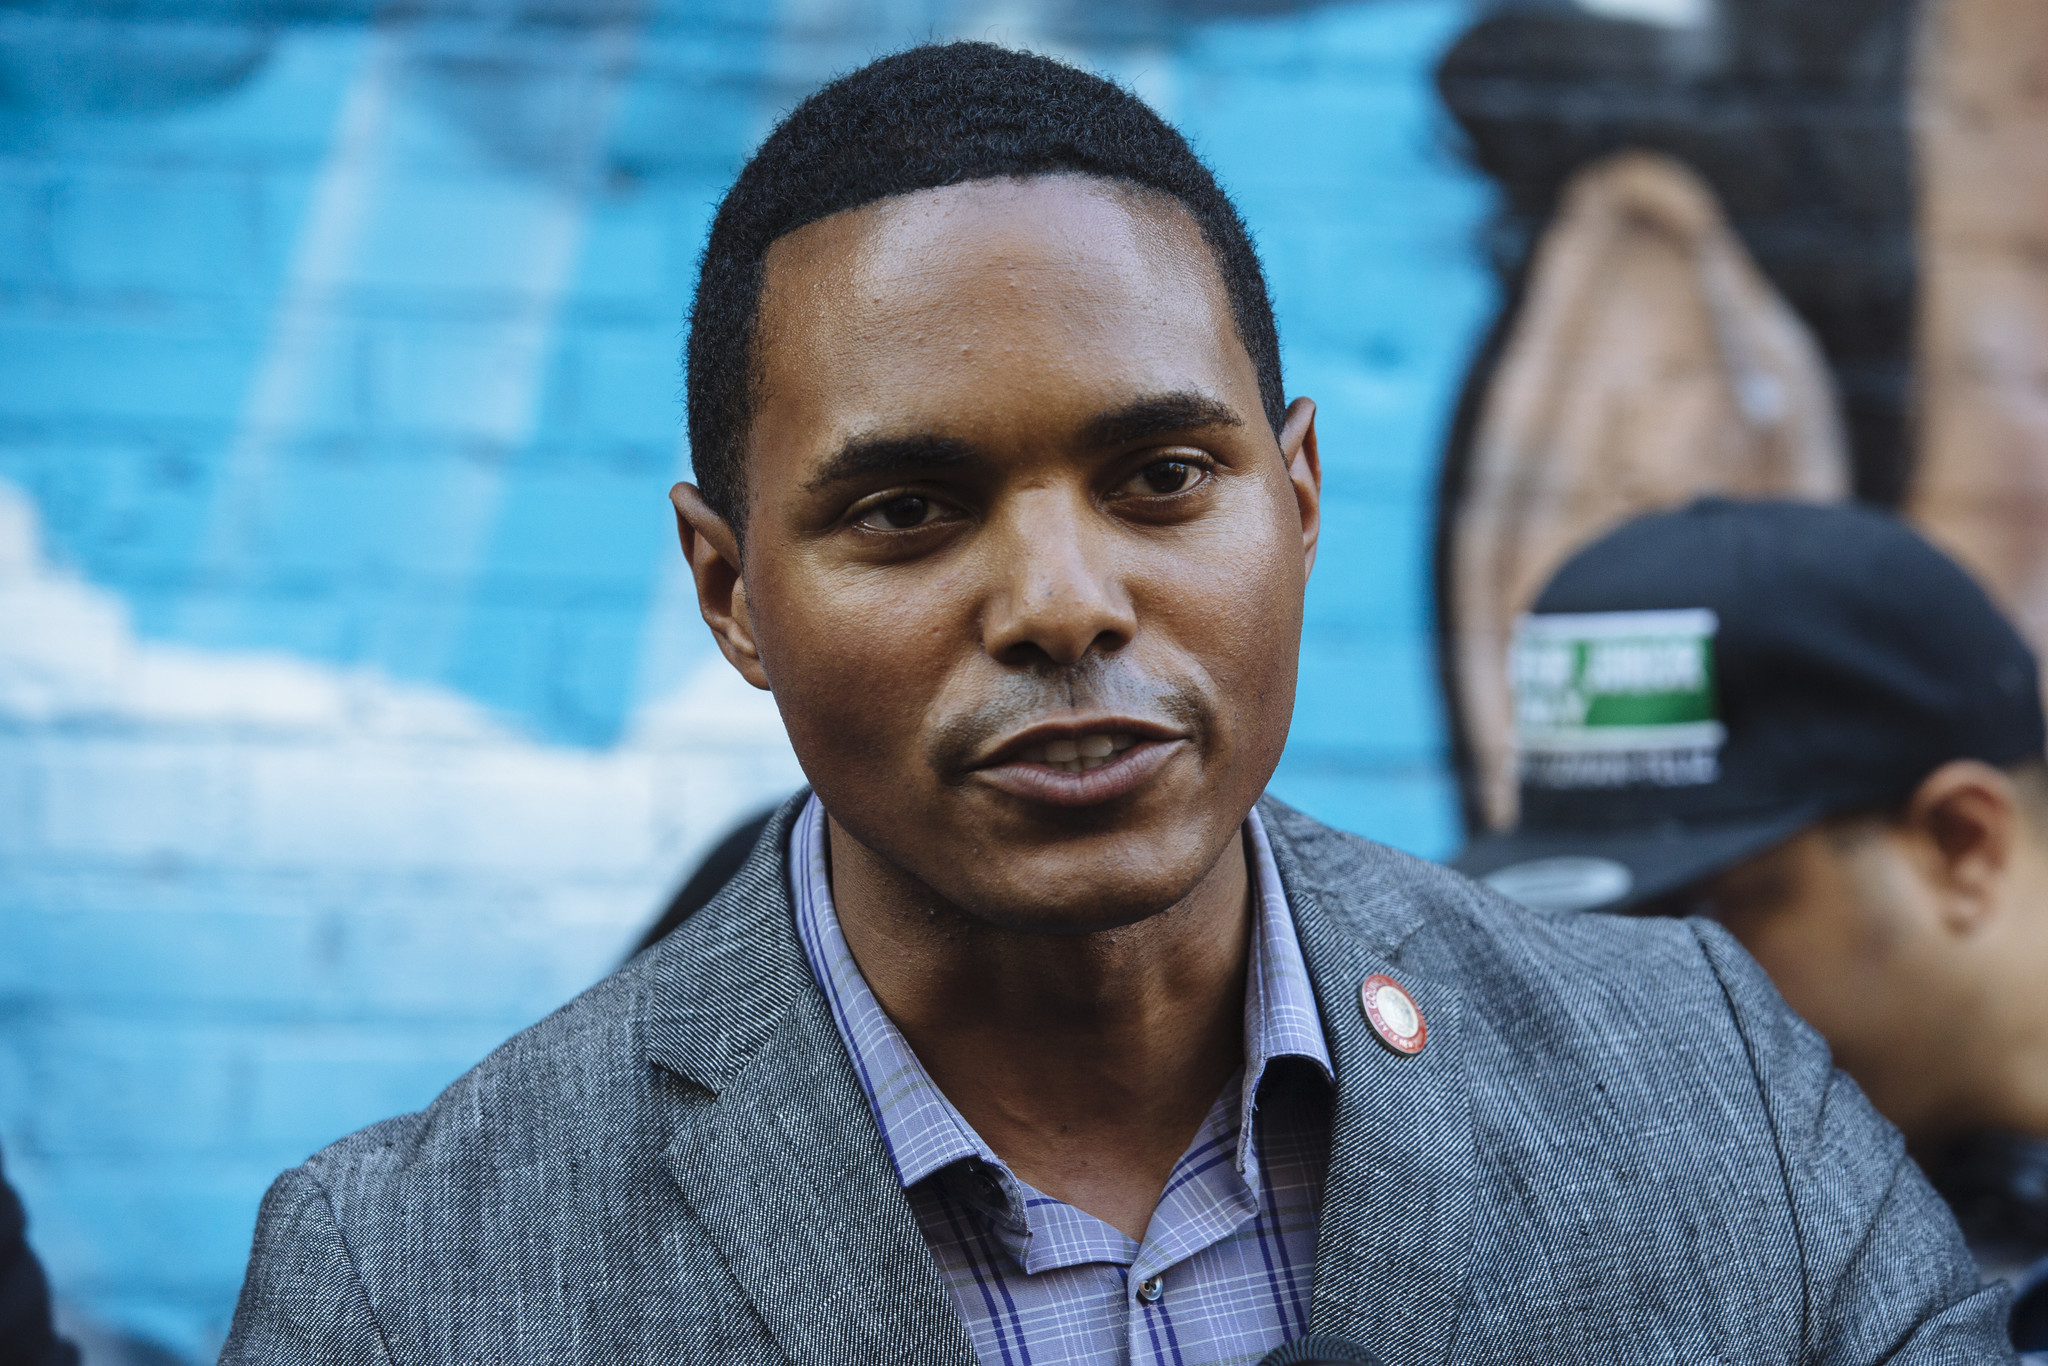 Councilman Ritchie Torres racks up union endorsements, rakes in $1M in bid for South Bronx congressional seat